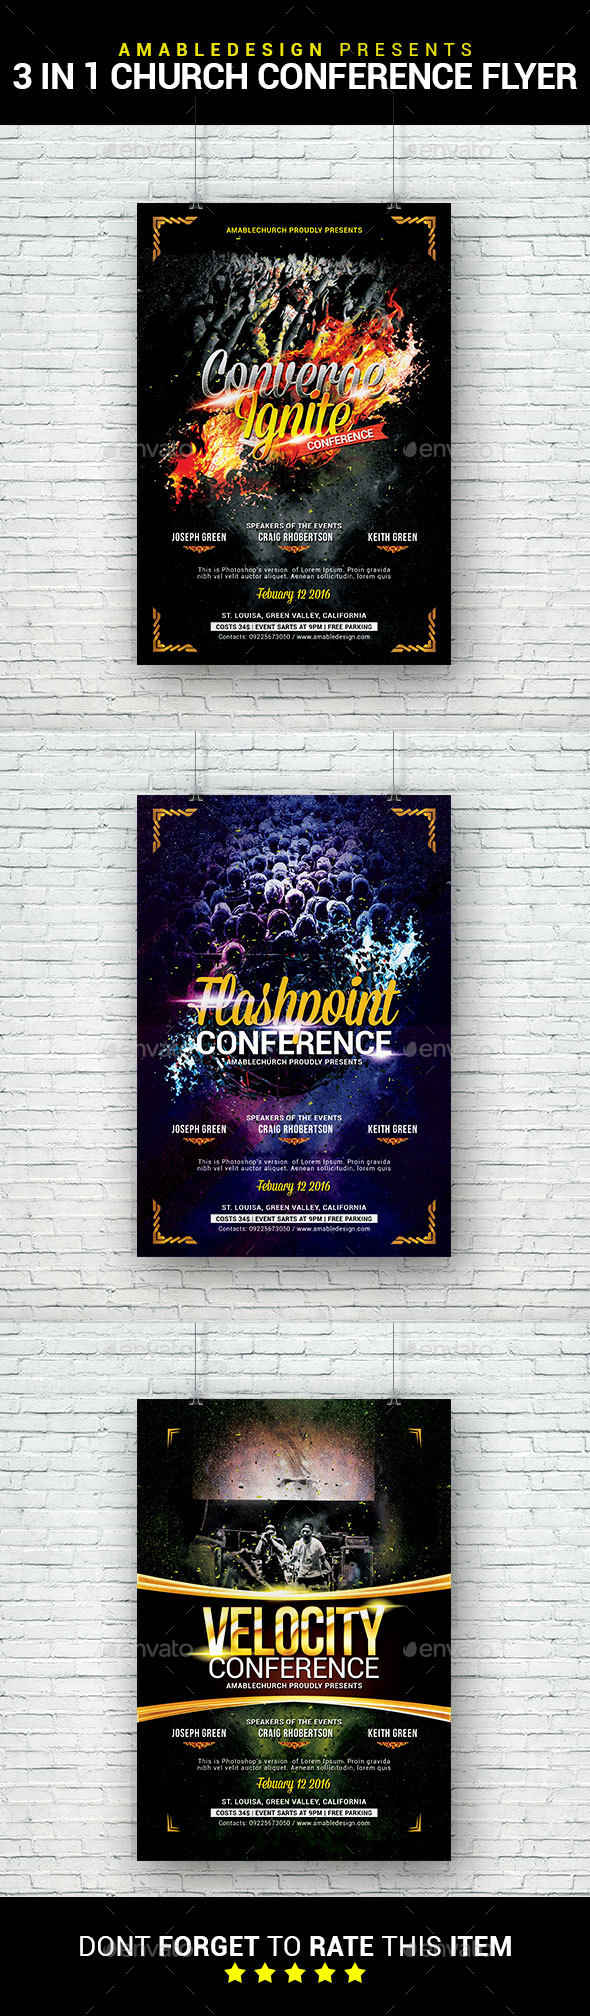 3 in 1 Church Conferences Flyer/Poster Bundle - Church Flyers